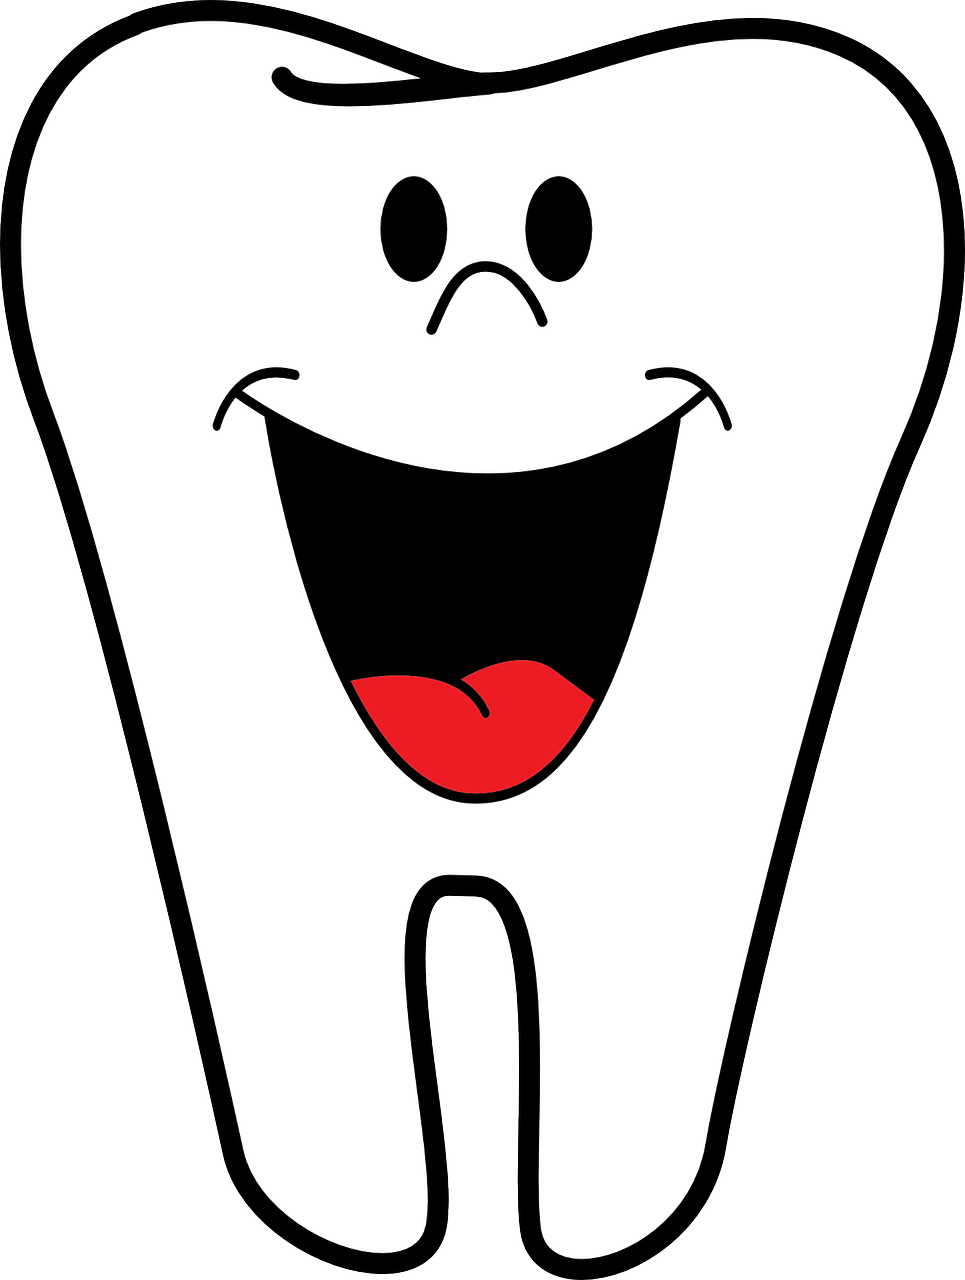 Tooth tales or the. Ear clipart hygiene